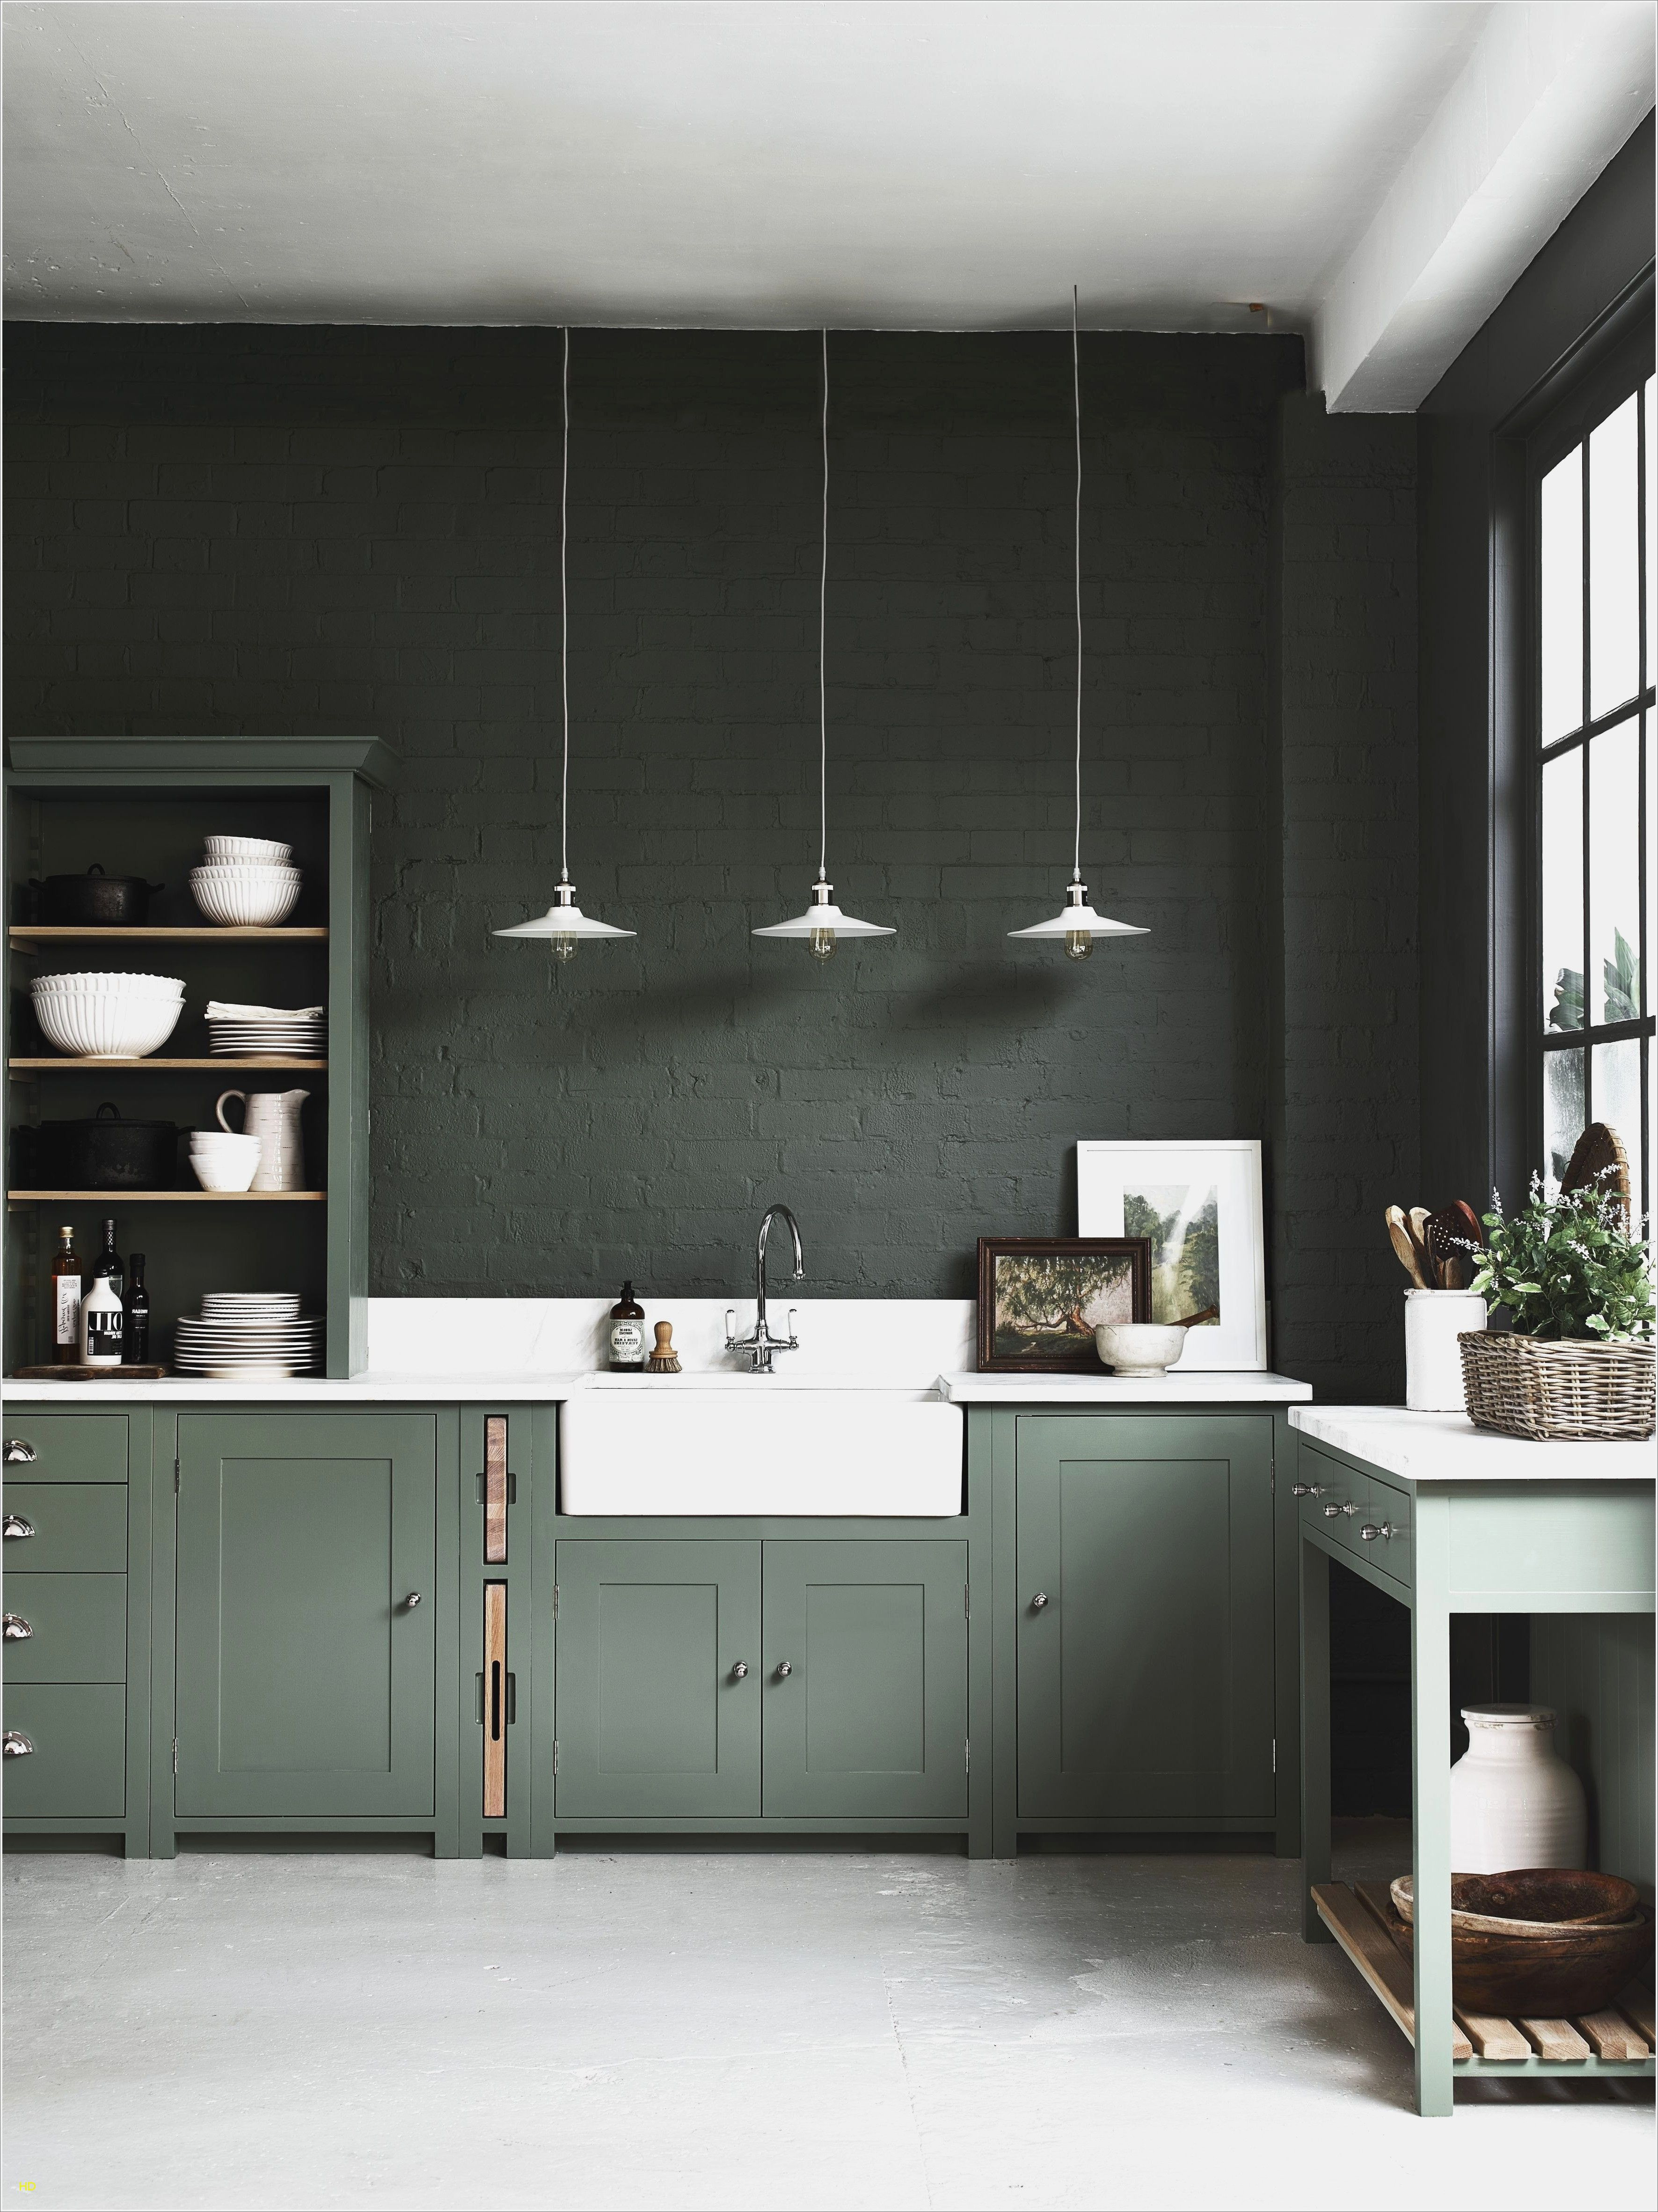 Pin By Prtha Lastnight On Kitchen Design In 2019 Green Kitchen